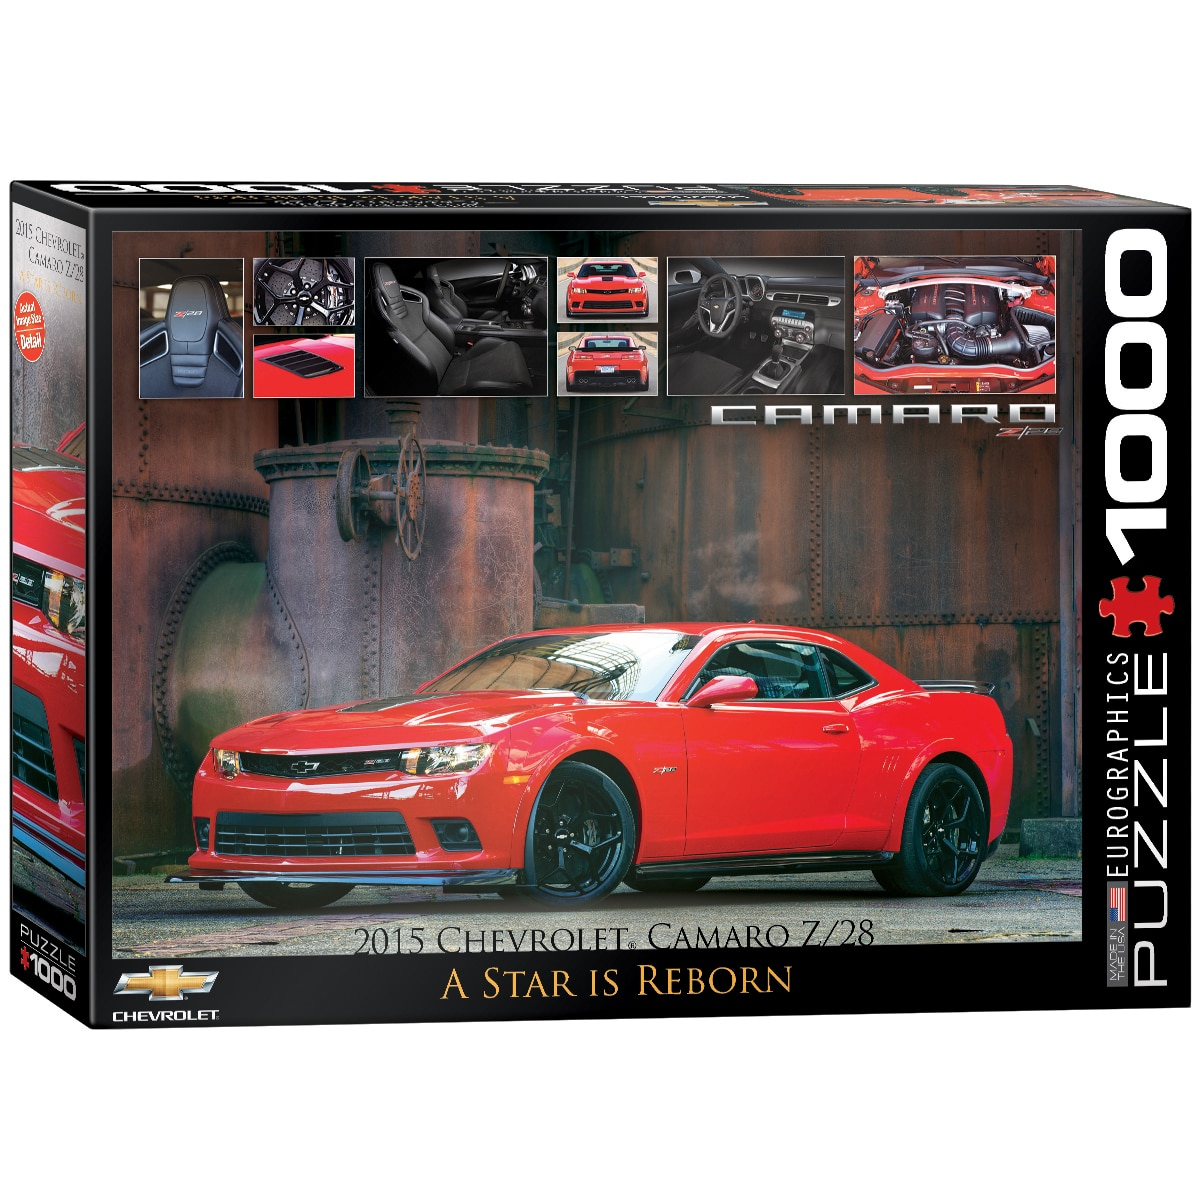 2015 Chevrolet Camaro Z/28: A Star is Reborn - 1000pc Jigsaw Puzzle by Eurographics